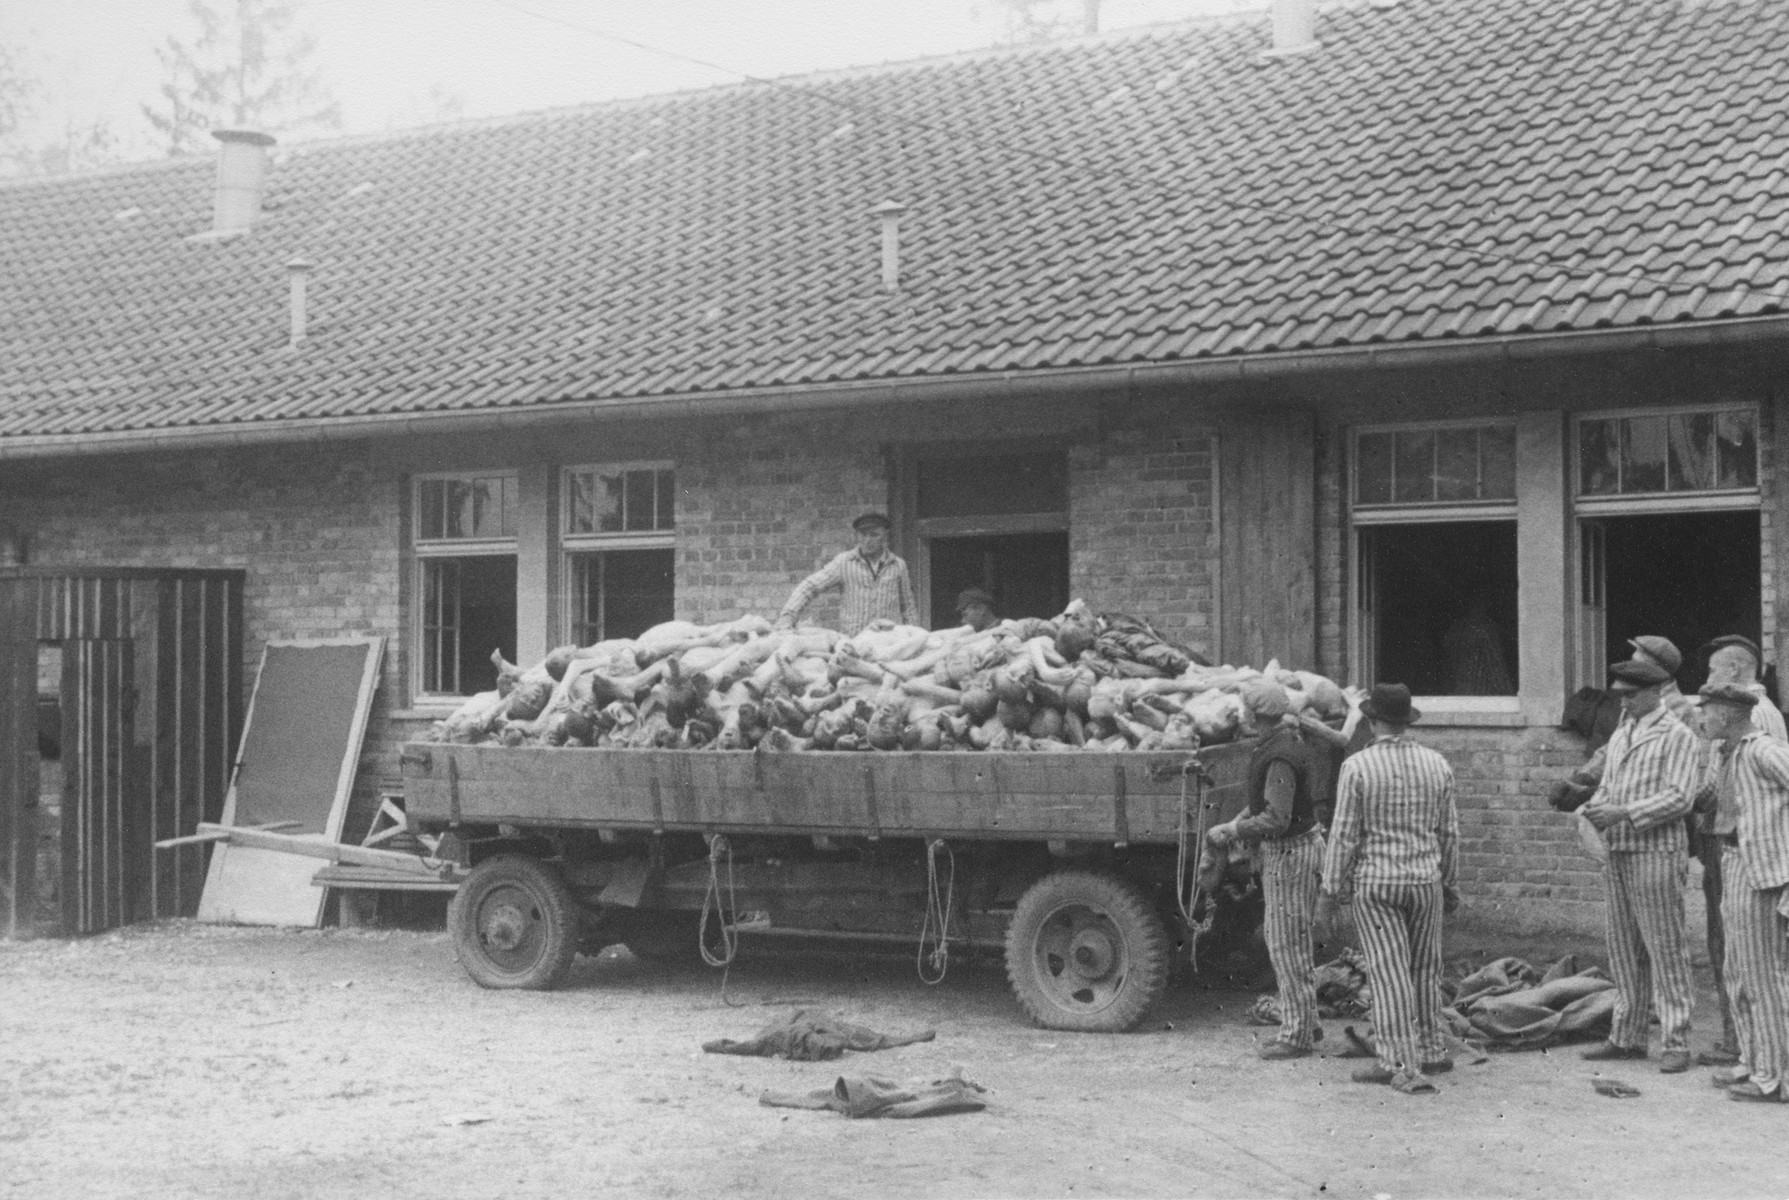 Liberated prisoners pile corpses onto a cart in Dachau.